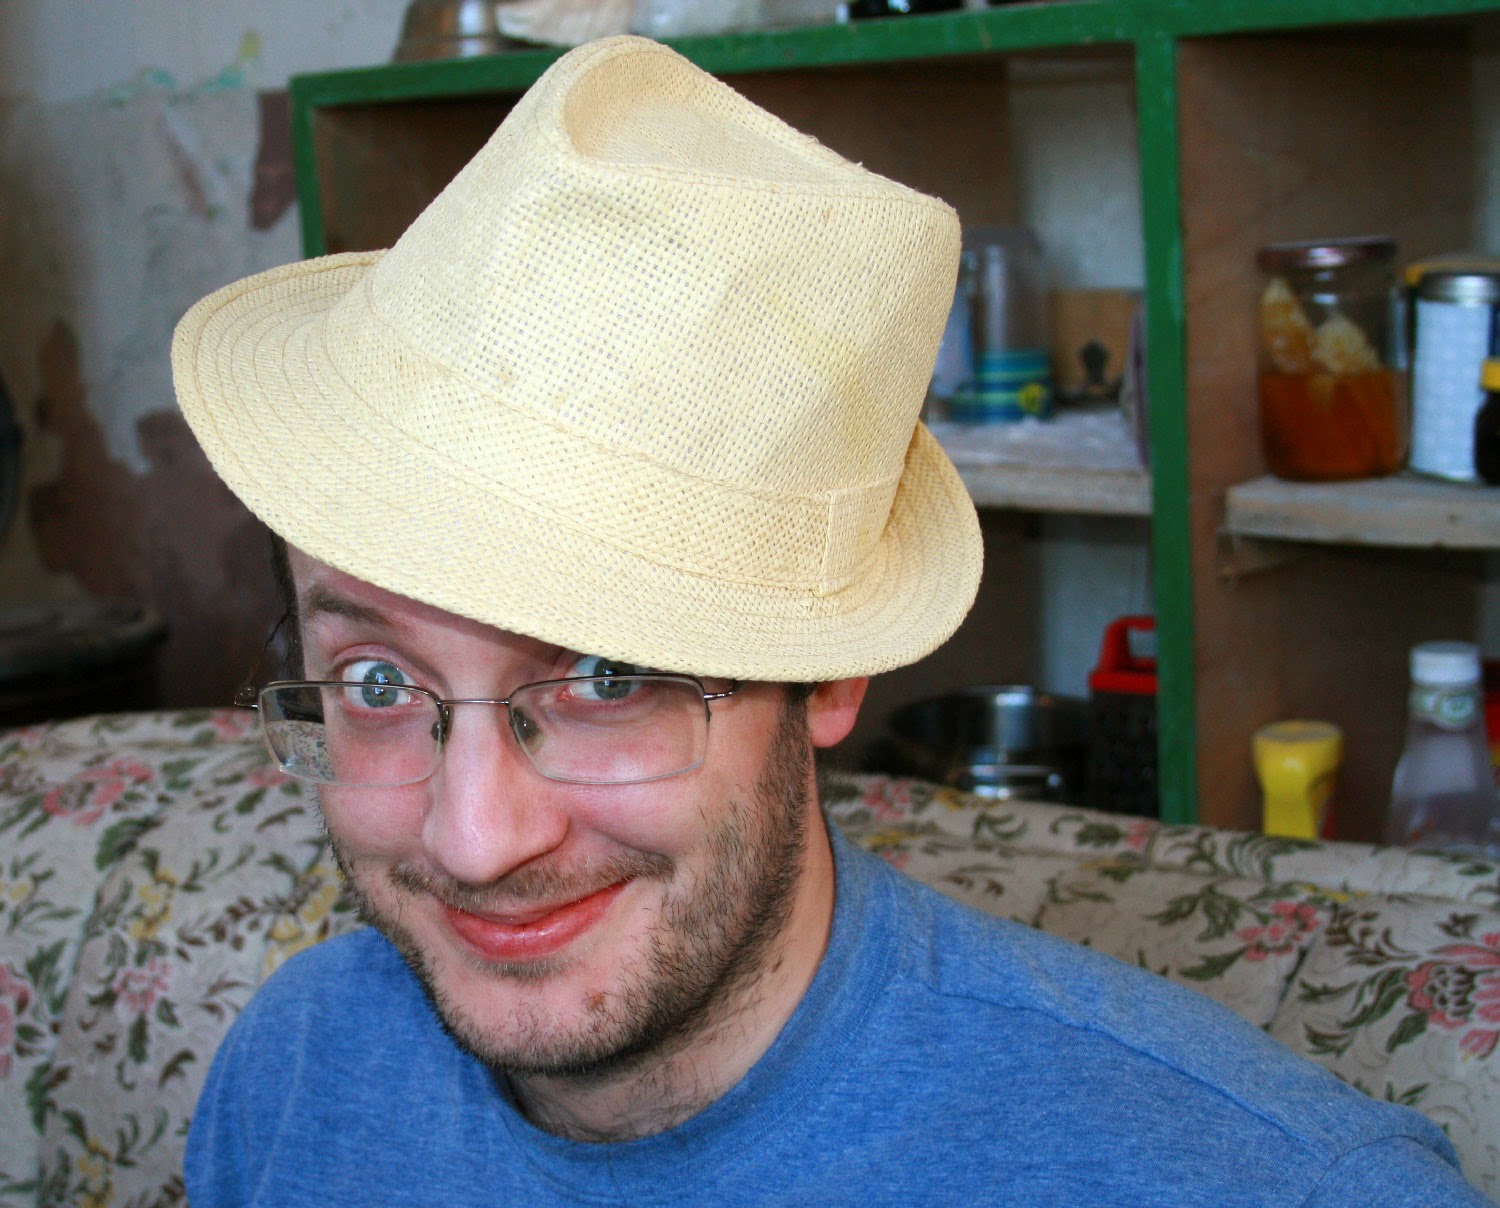 Cjc and the jaunty hat